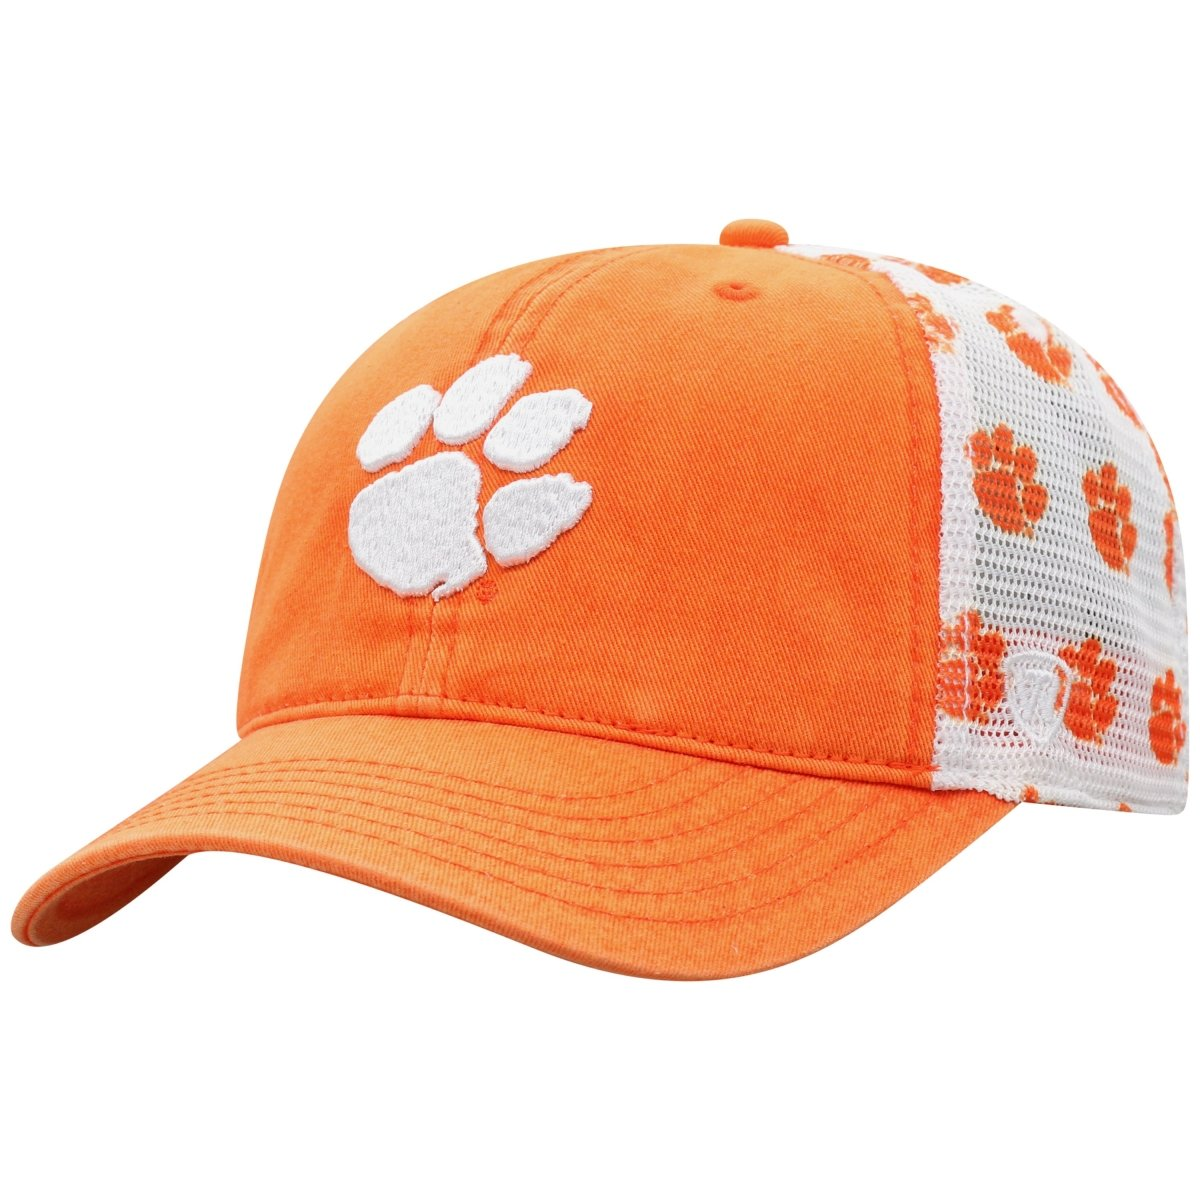 Top of the World Clemson Racer Trucker Hat With All Over Print Paws - Mr. Knickerbocker